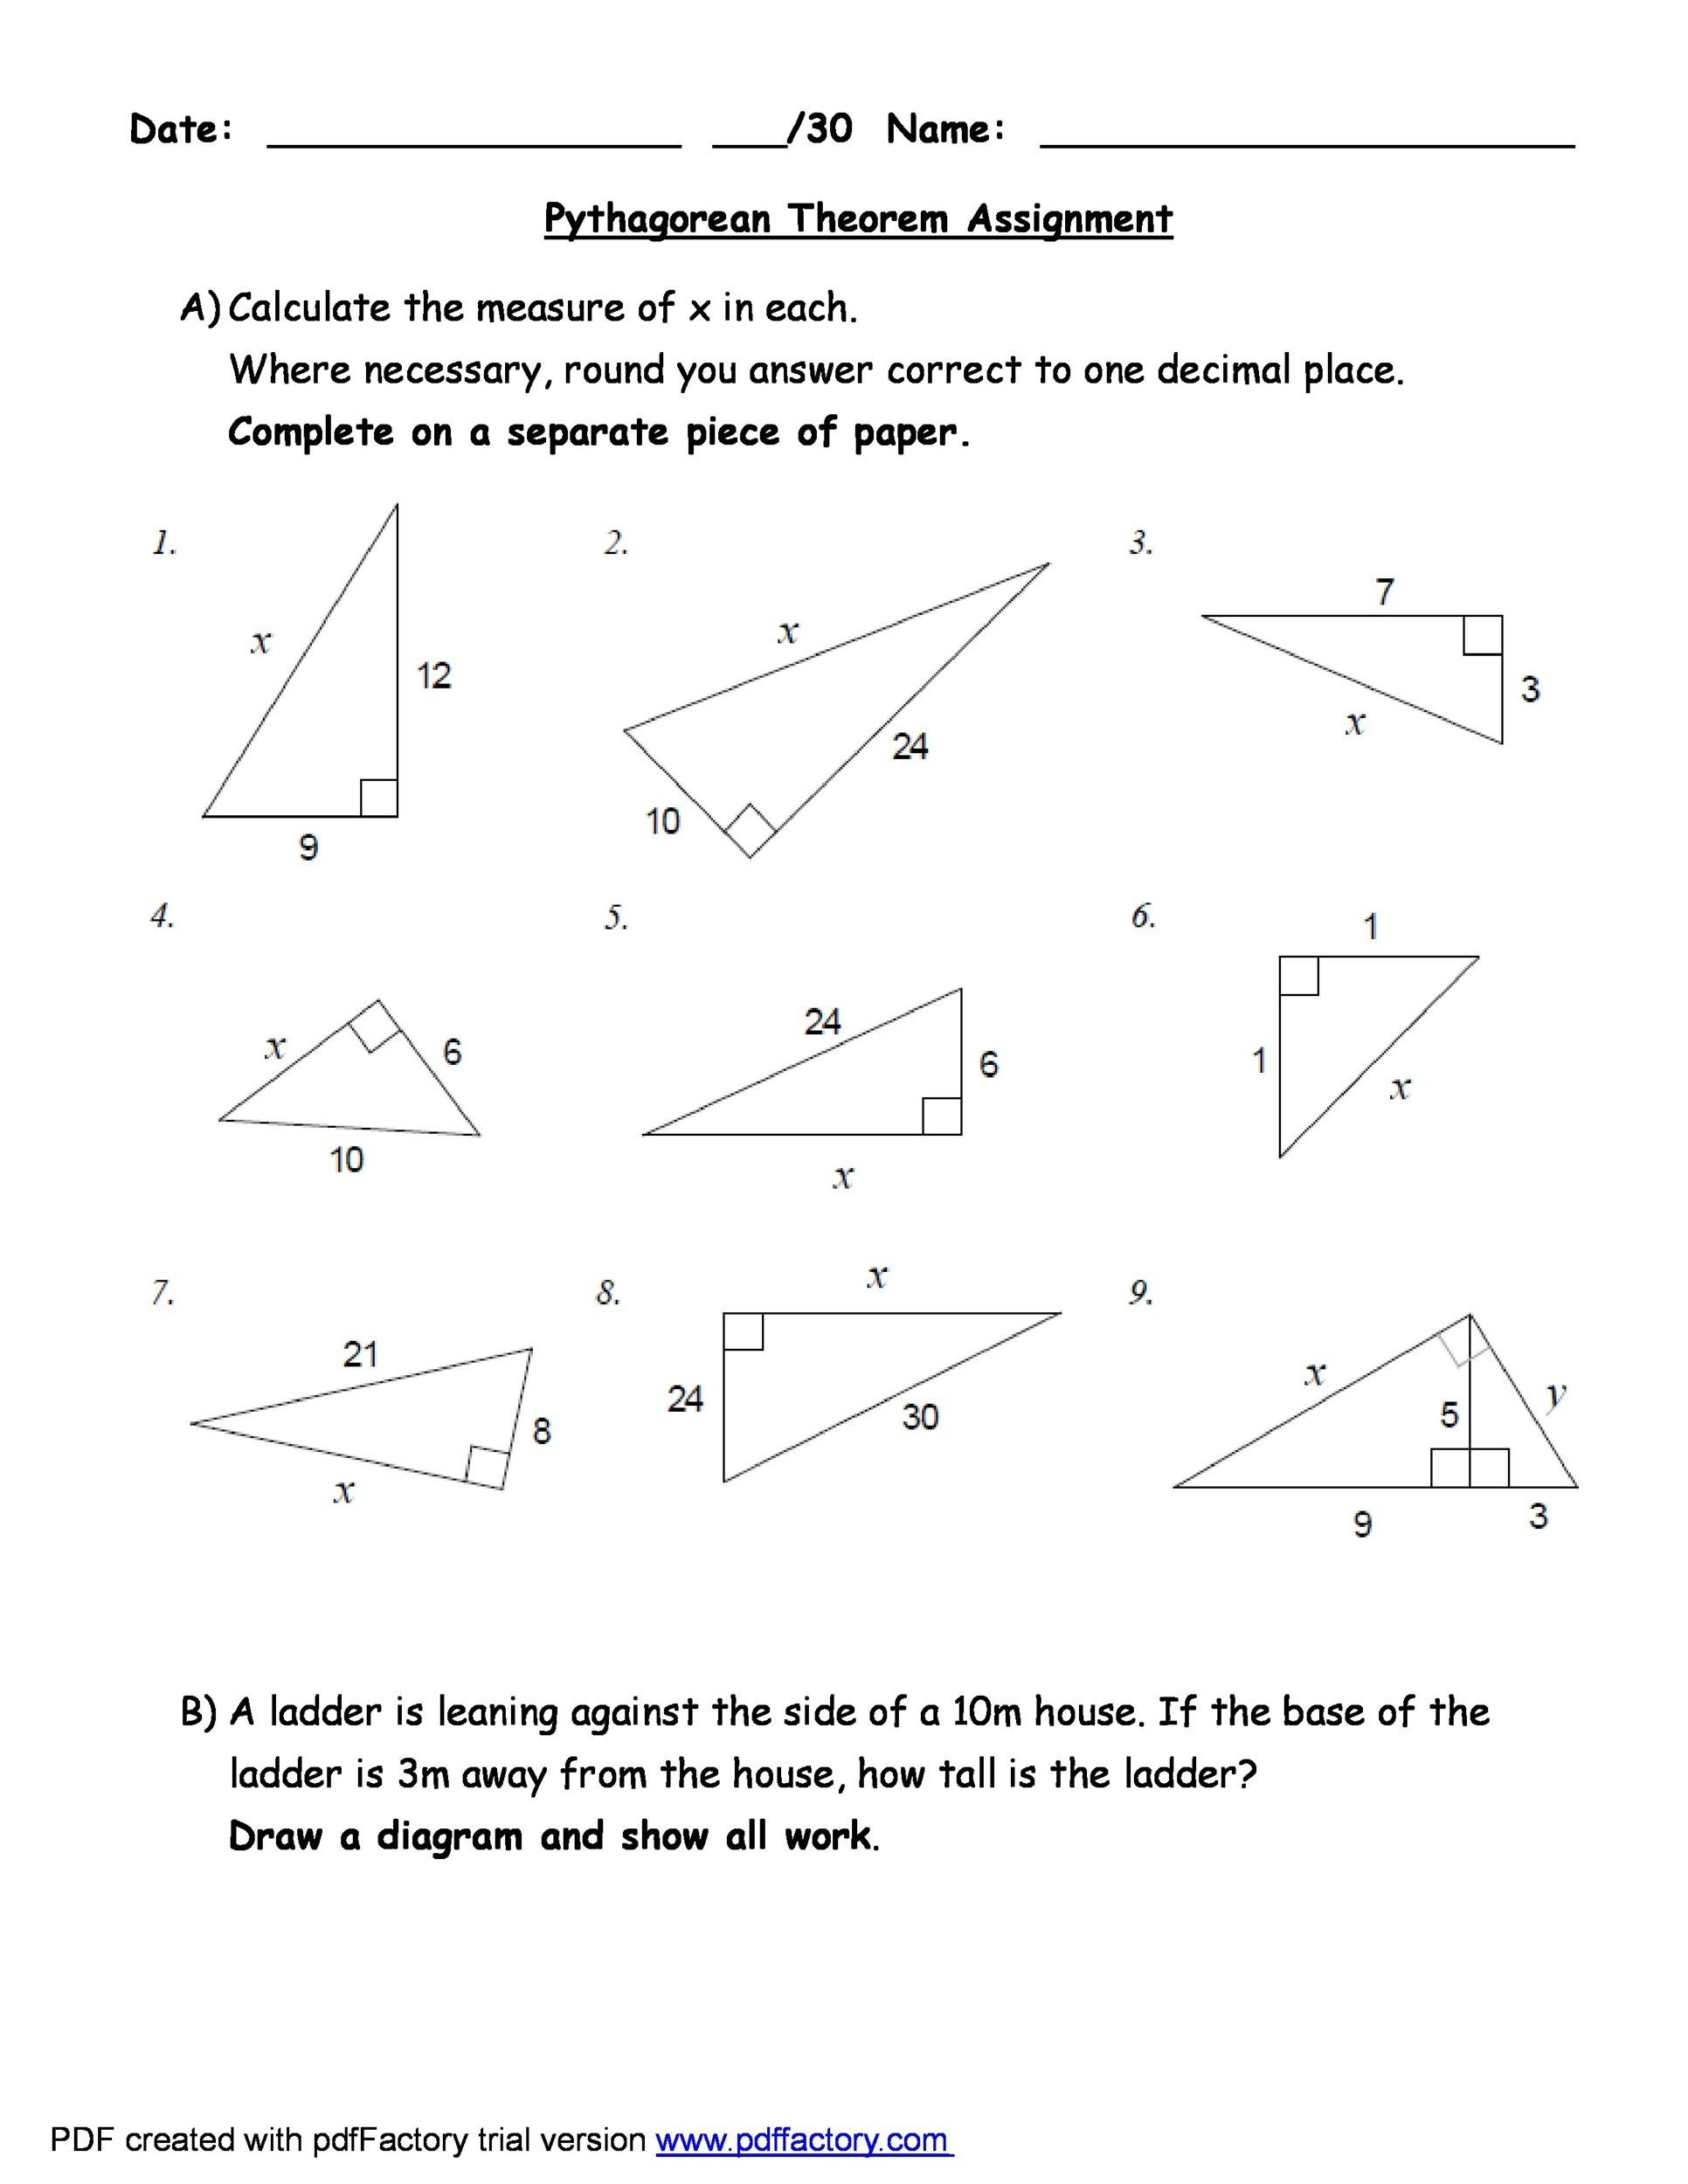 Worksheets Pythagorean Theorem Worksheet With Answers pythagorean theorem worksheet answers multiplying mixed numbers 48 template lab 2 answers